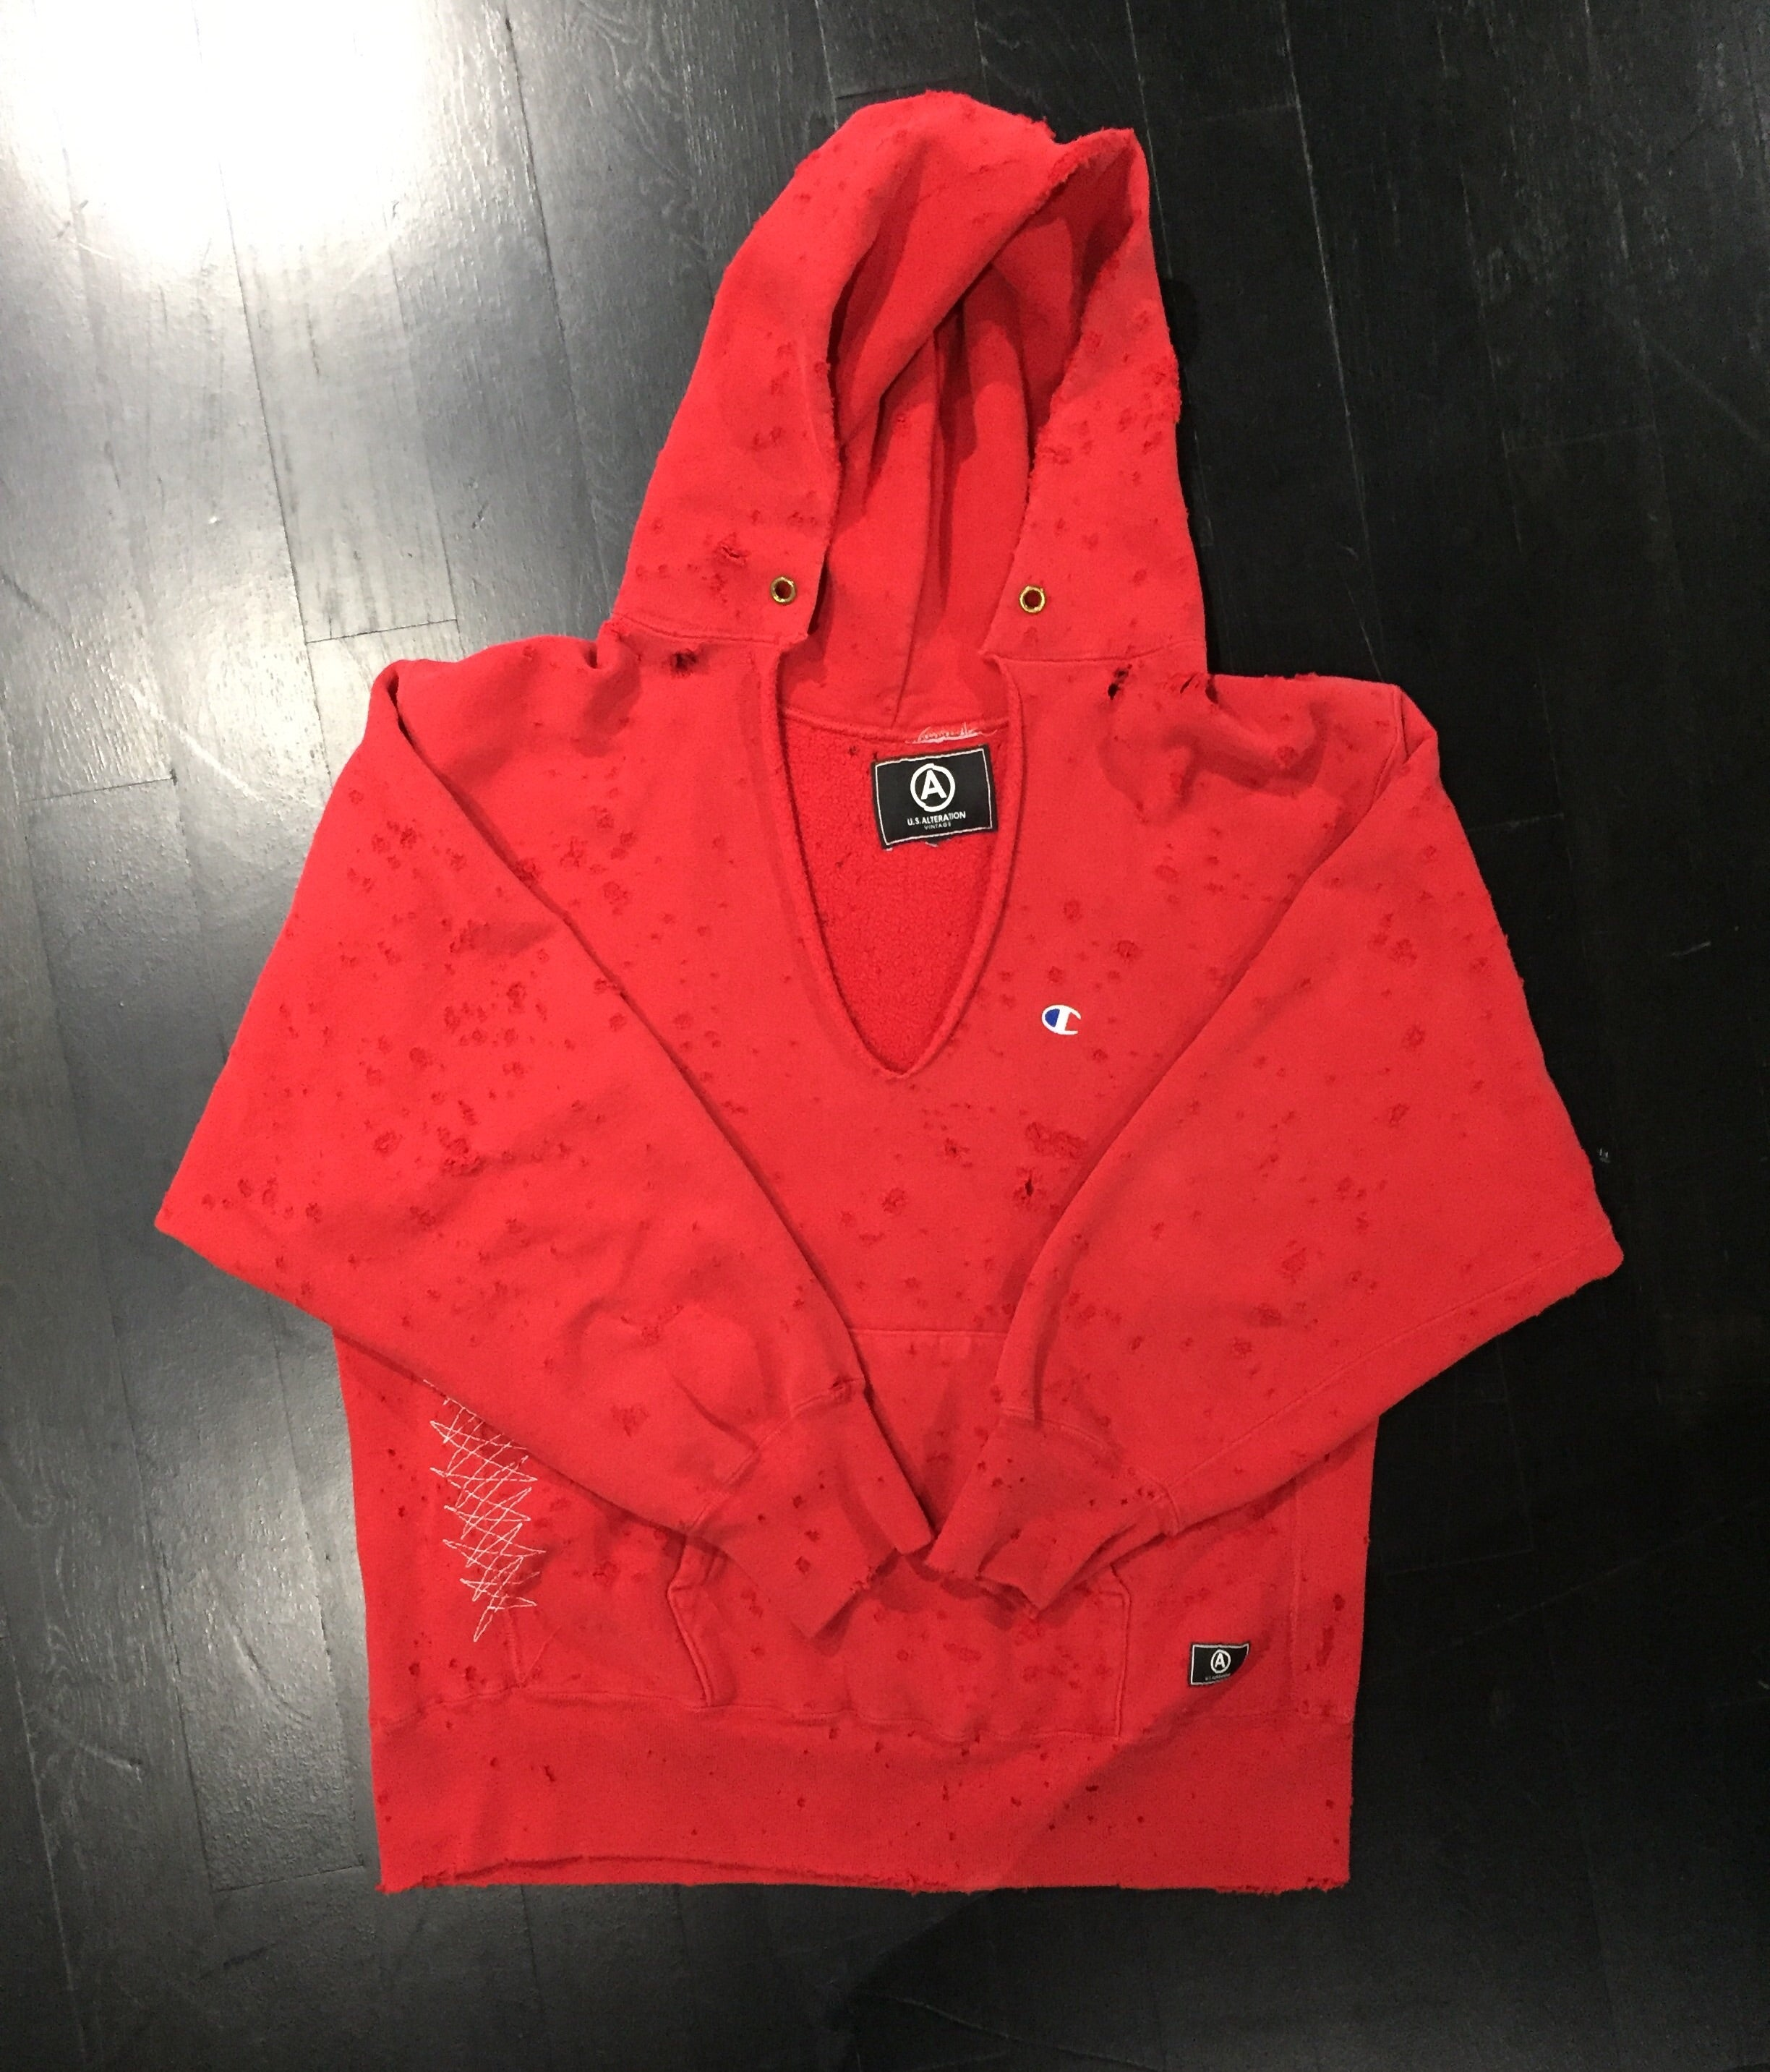 CHAMPION HOODED V NECK SWEATSHIRT/ DISTRESSED / RED / M